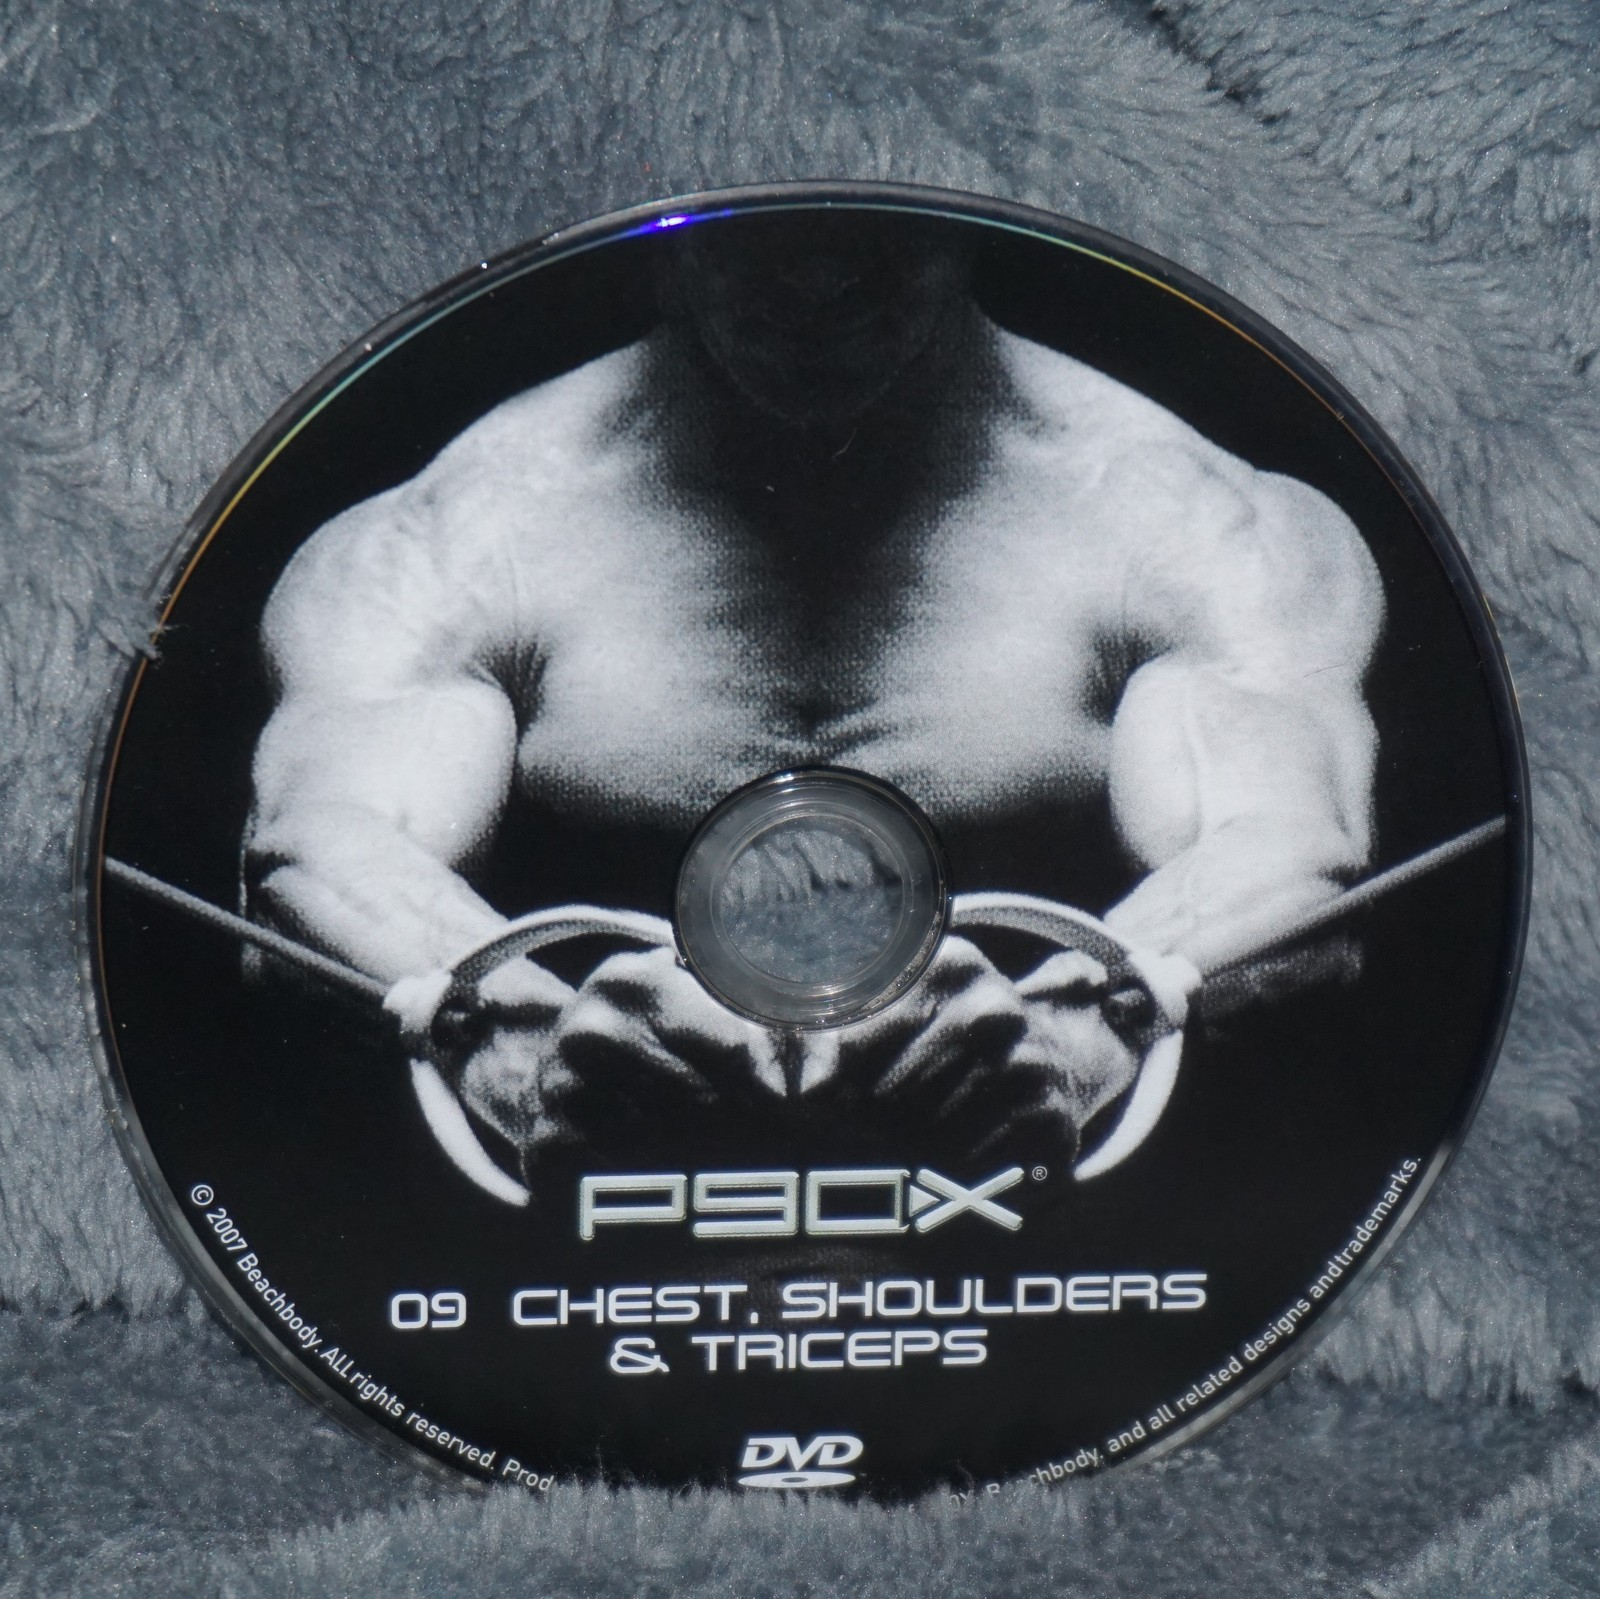 P90x Disc 9 Chest Shoulders Amp Triceps And 50 Similar Items